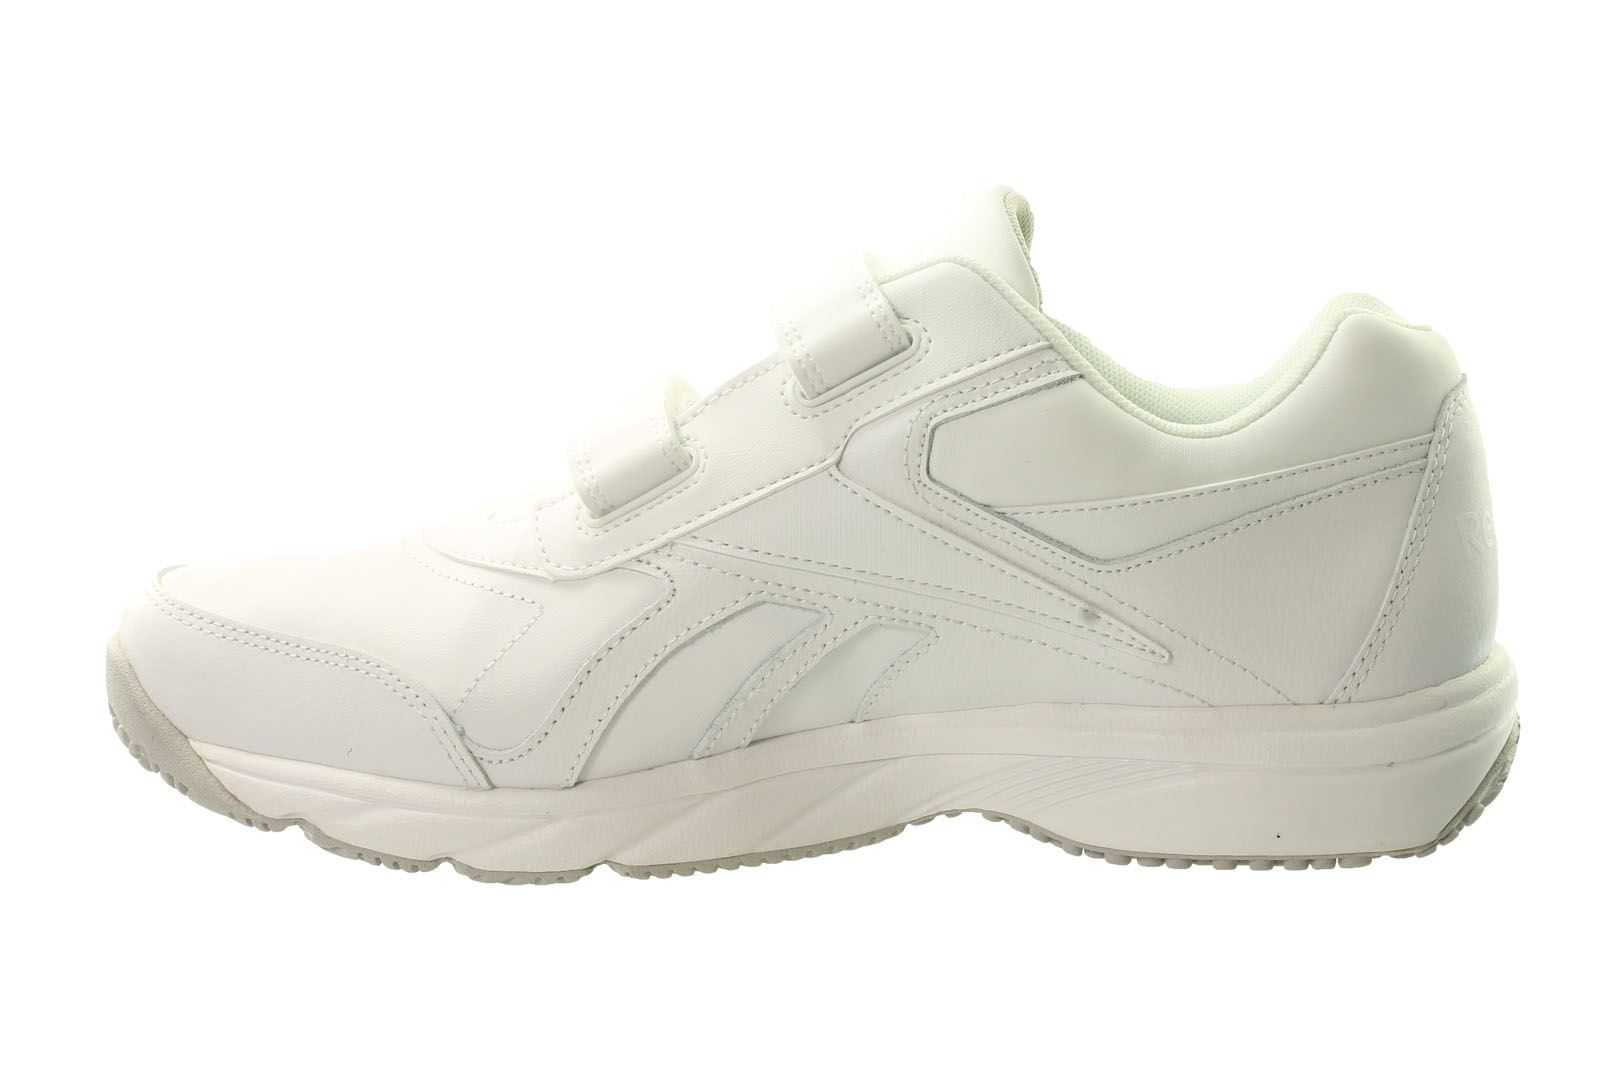 Reebok-Work-039-n-039-Cushion-KC-Mens-Trainers-Leather-CLEARANCE-PRICE Indexbild 4